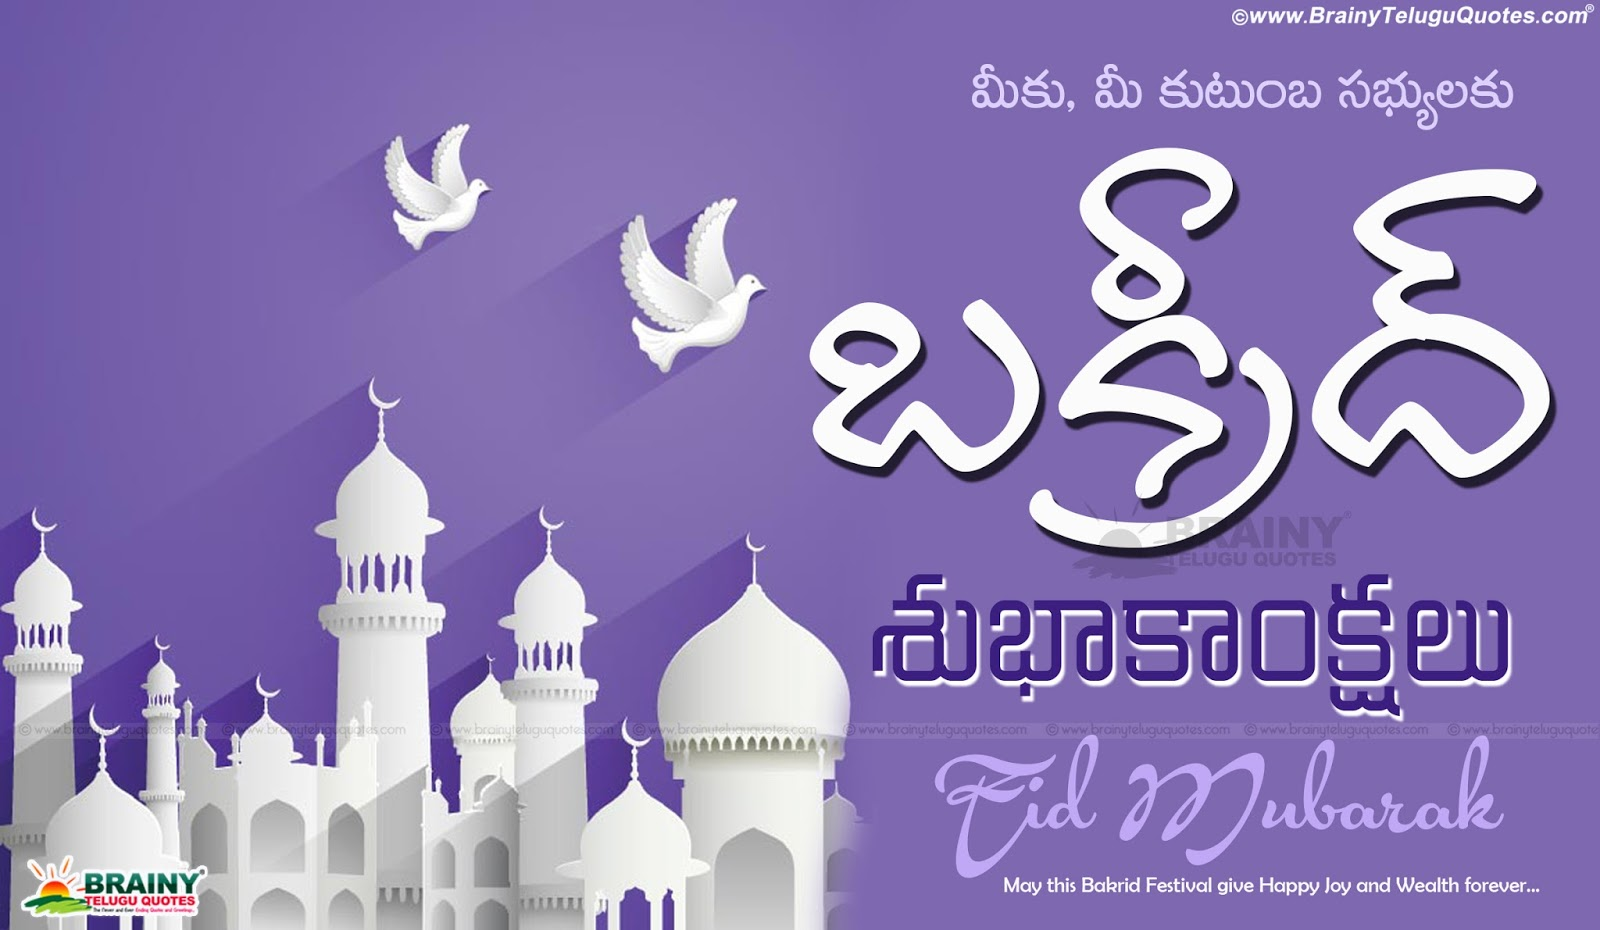 Happy Bakrid Festival Telugu Wishes Quotes For Friends And Family